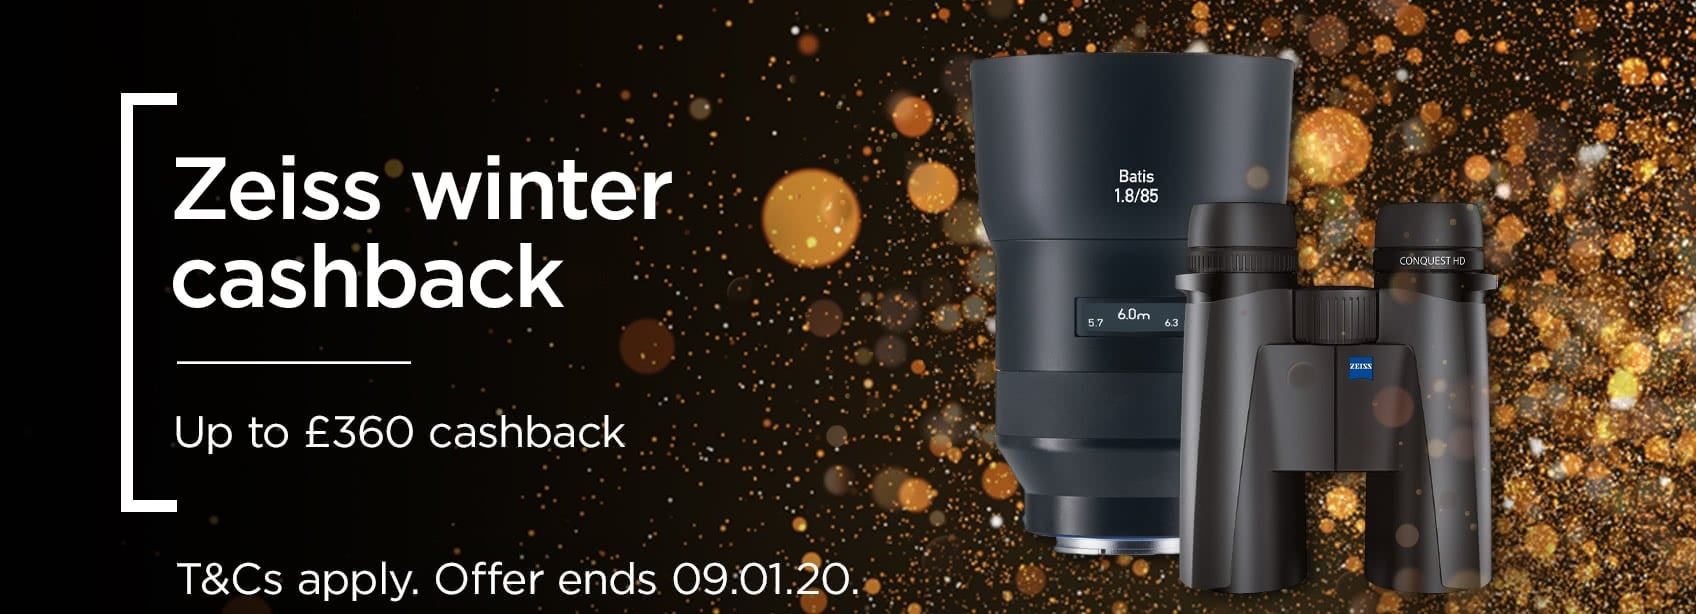 Zeiss Black Friday - Up to £360 cashback